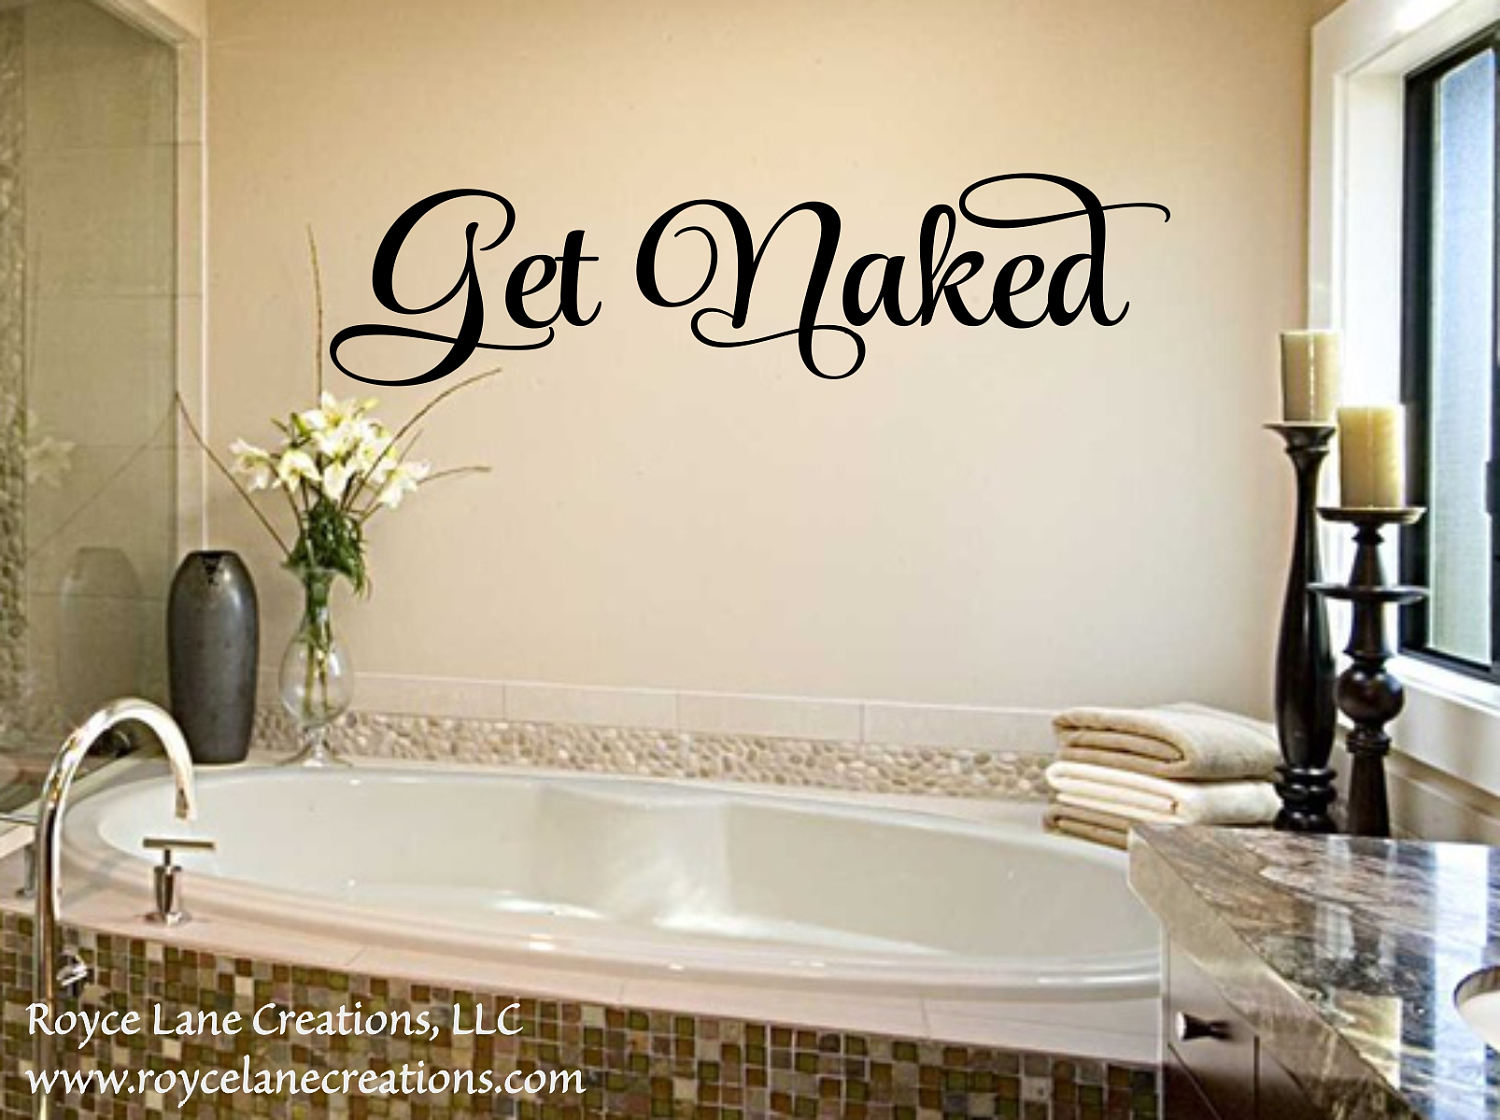 Delicieux Bathroom Decal   Get Naked 2 Bathroom Wall Decal   Bathroom Decor  Bathroom  Wall Decor  Bathroom Art